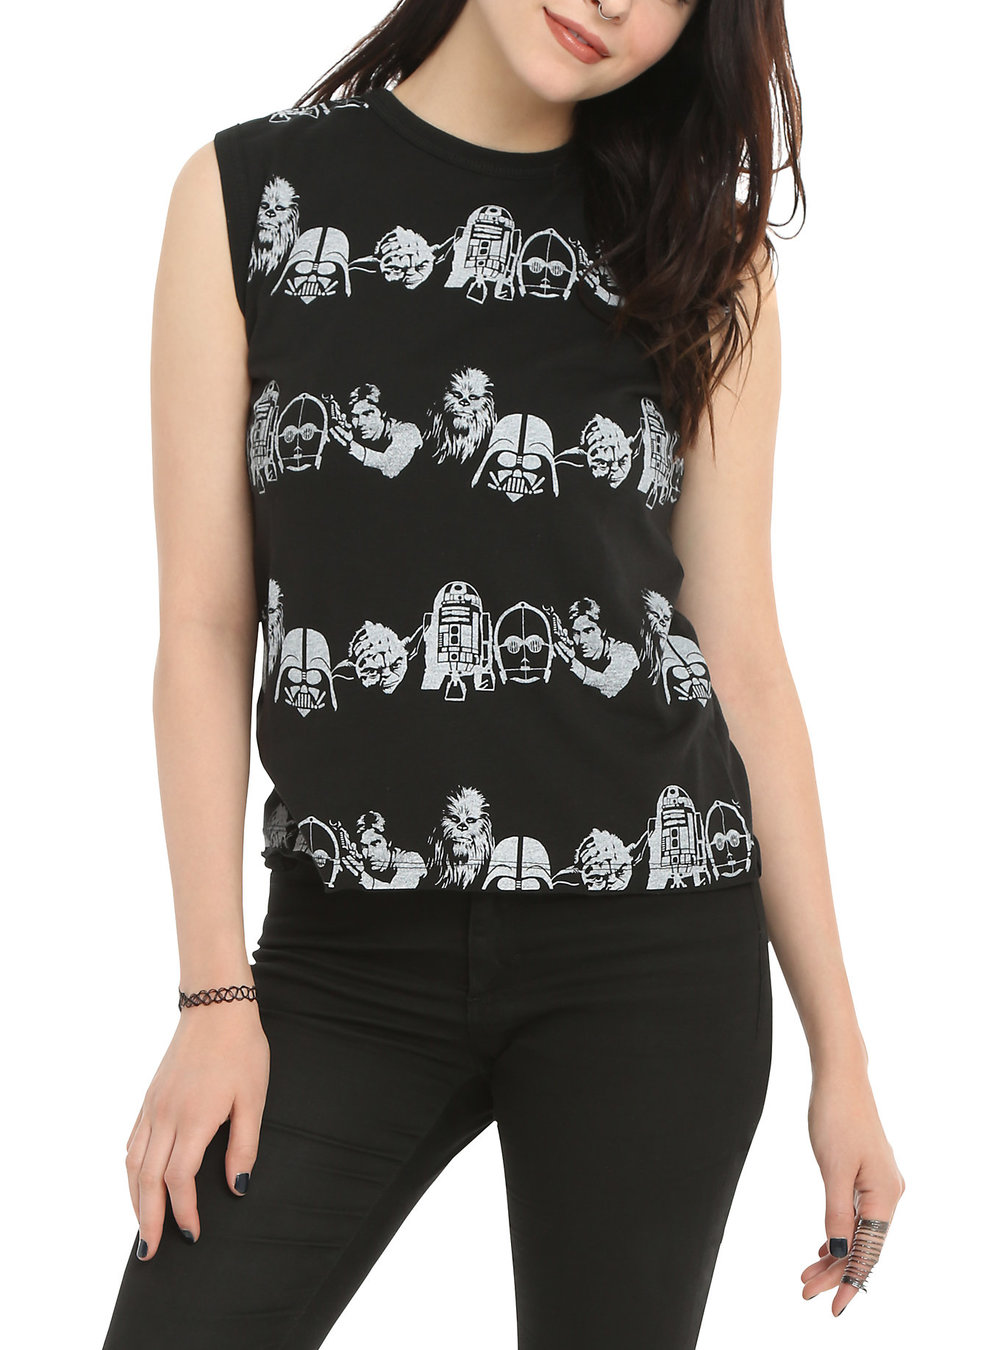 Star Wars Character Girls Stencil Top. Hot Topic. $24. Additional 30% off.